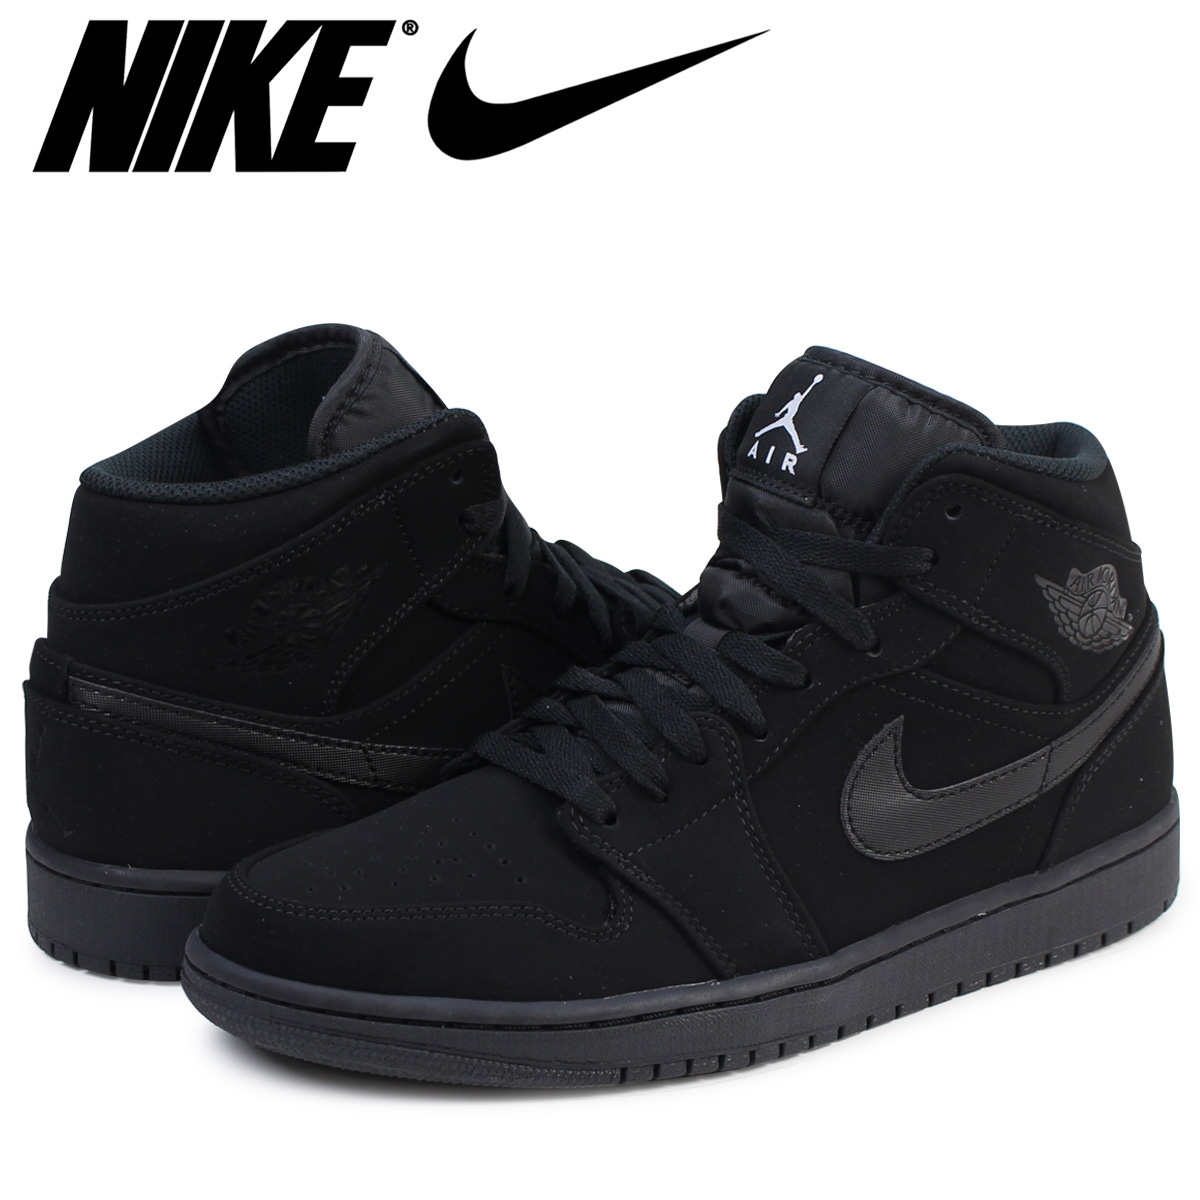 wholesale dealer be957 fb1ee NIKE AIR JORDAN 1 MID Nike Air Jordan 1 sneakers men 554,724-040 black